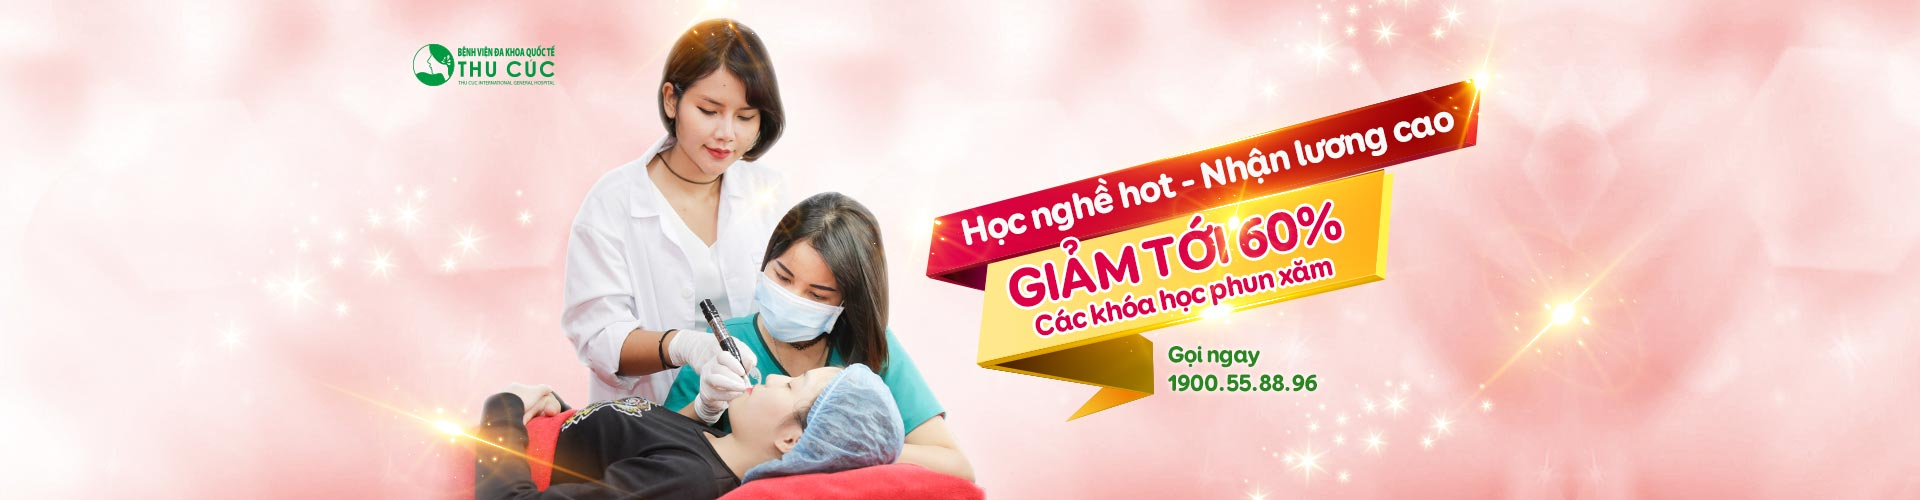 banner-hoc-nghe-phun-xam-hot-nhan-luomng-cao